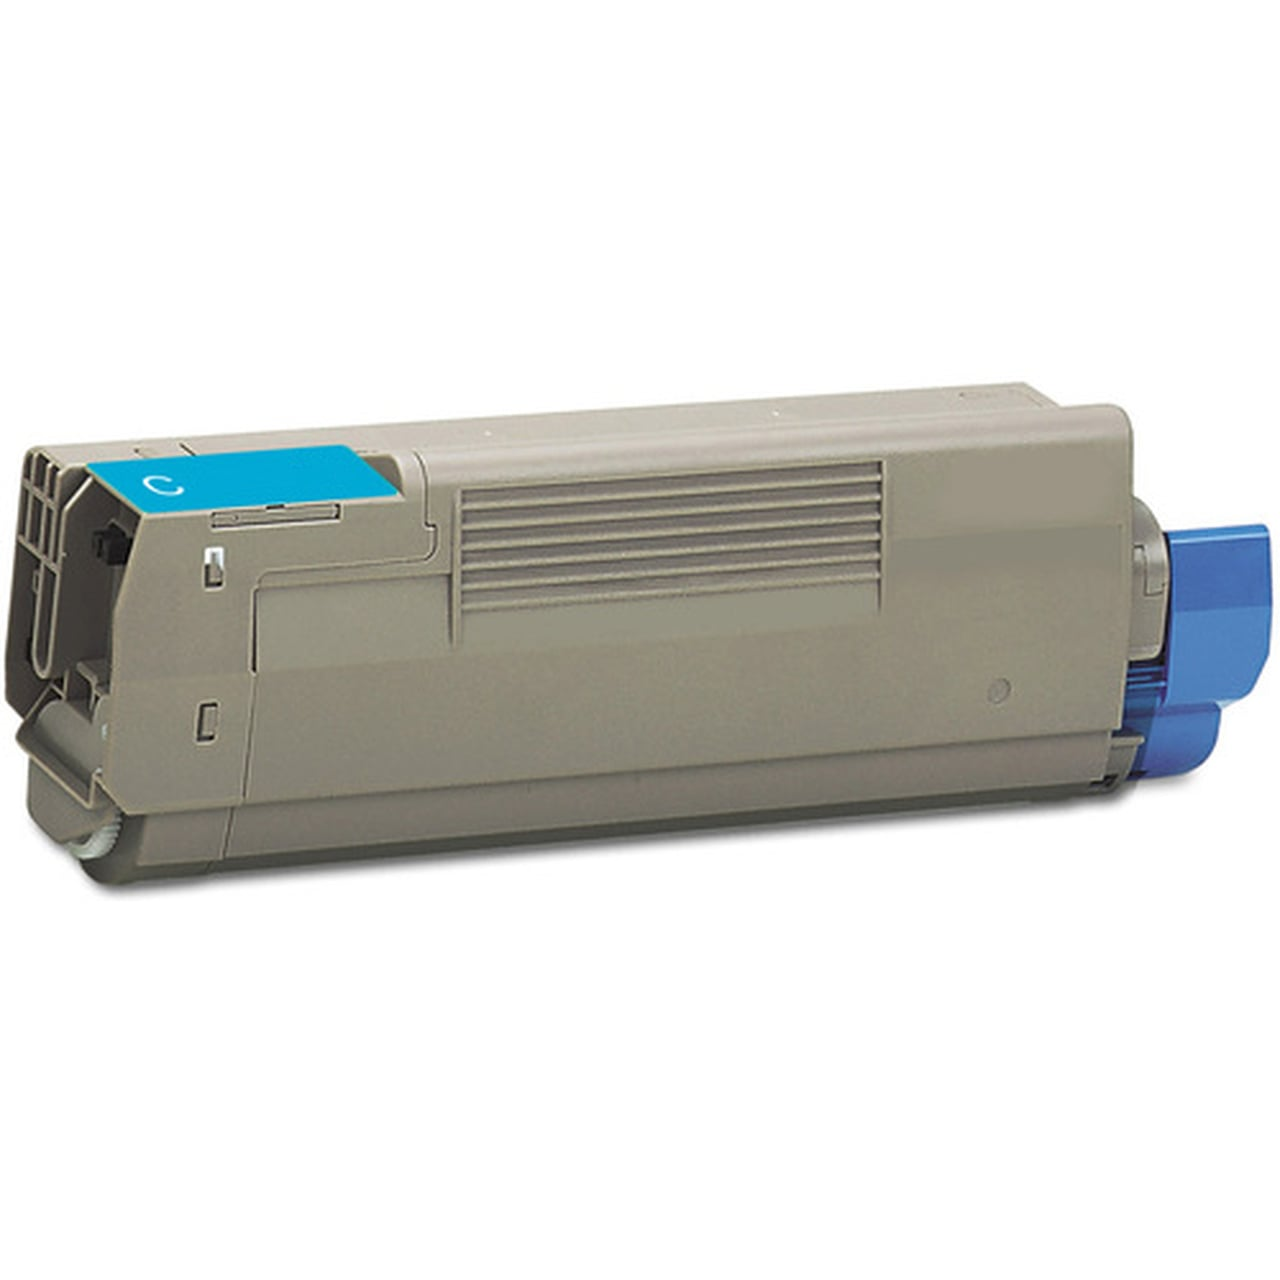 43324468 Toner Cartridge - Okidata New Compatible  (Cyan)